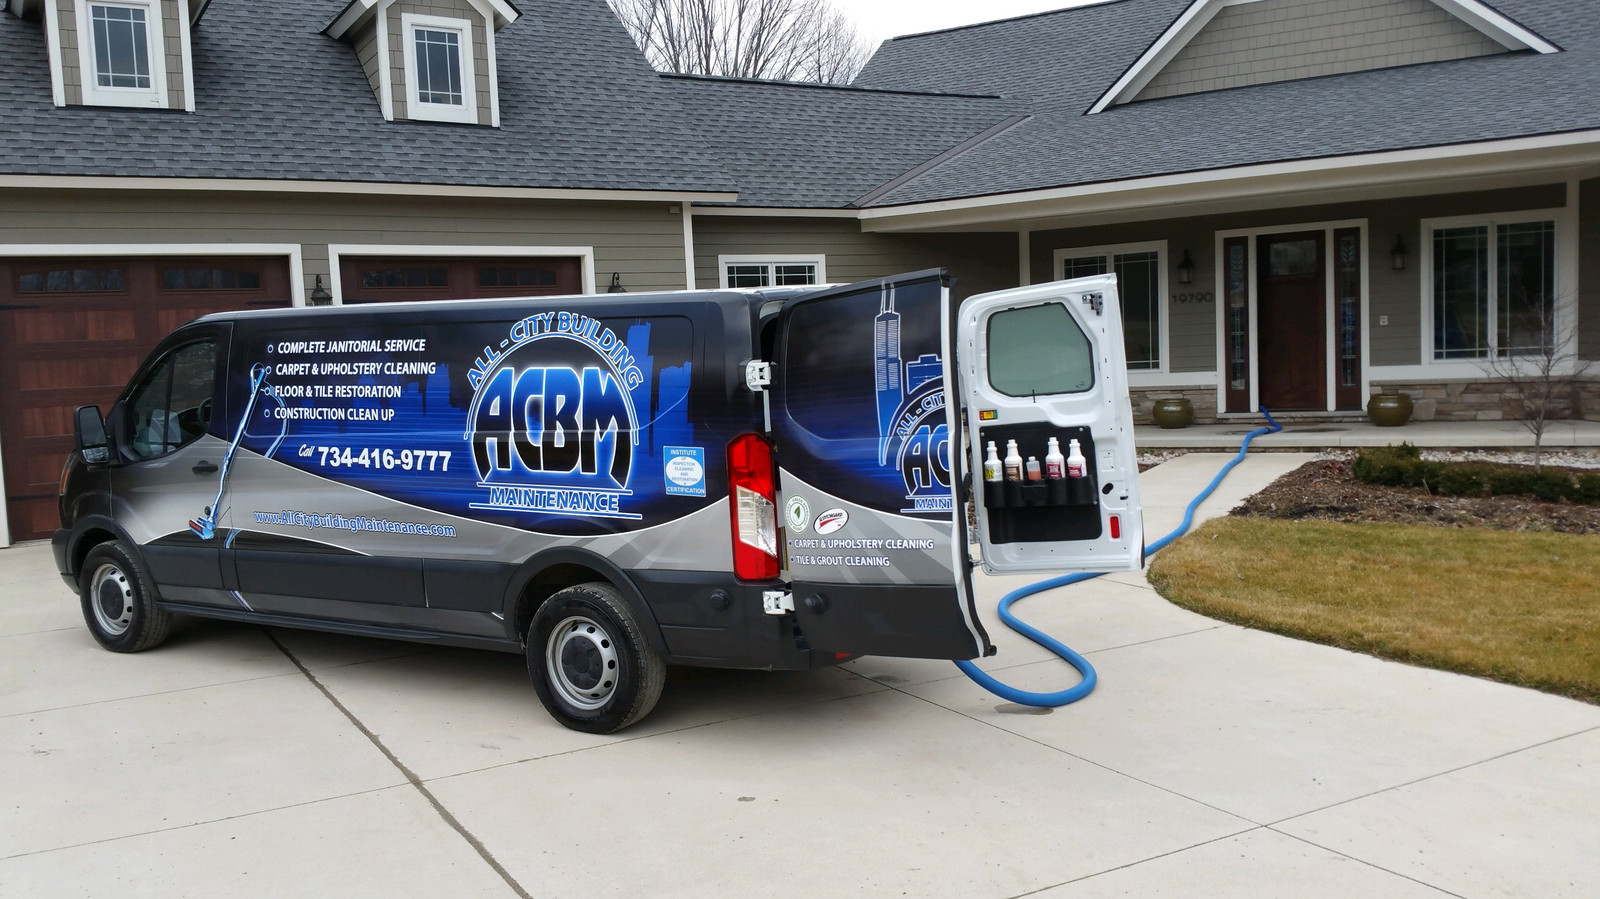 South Lyon Carpet Cleaning Truck